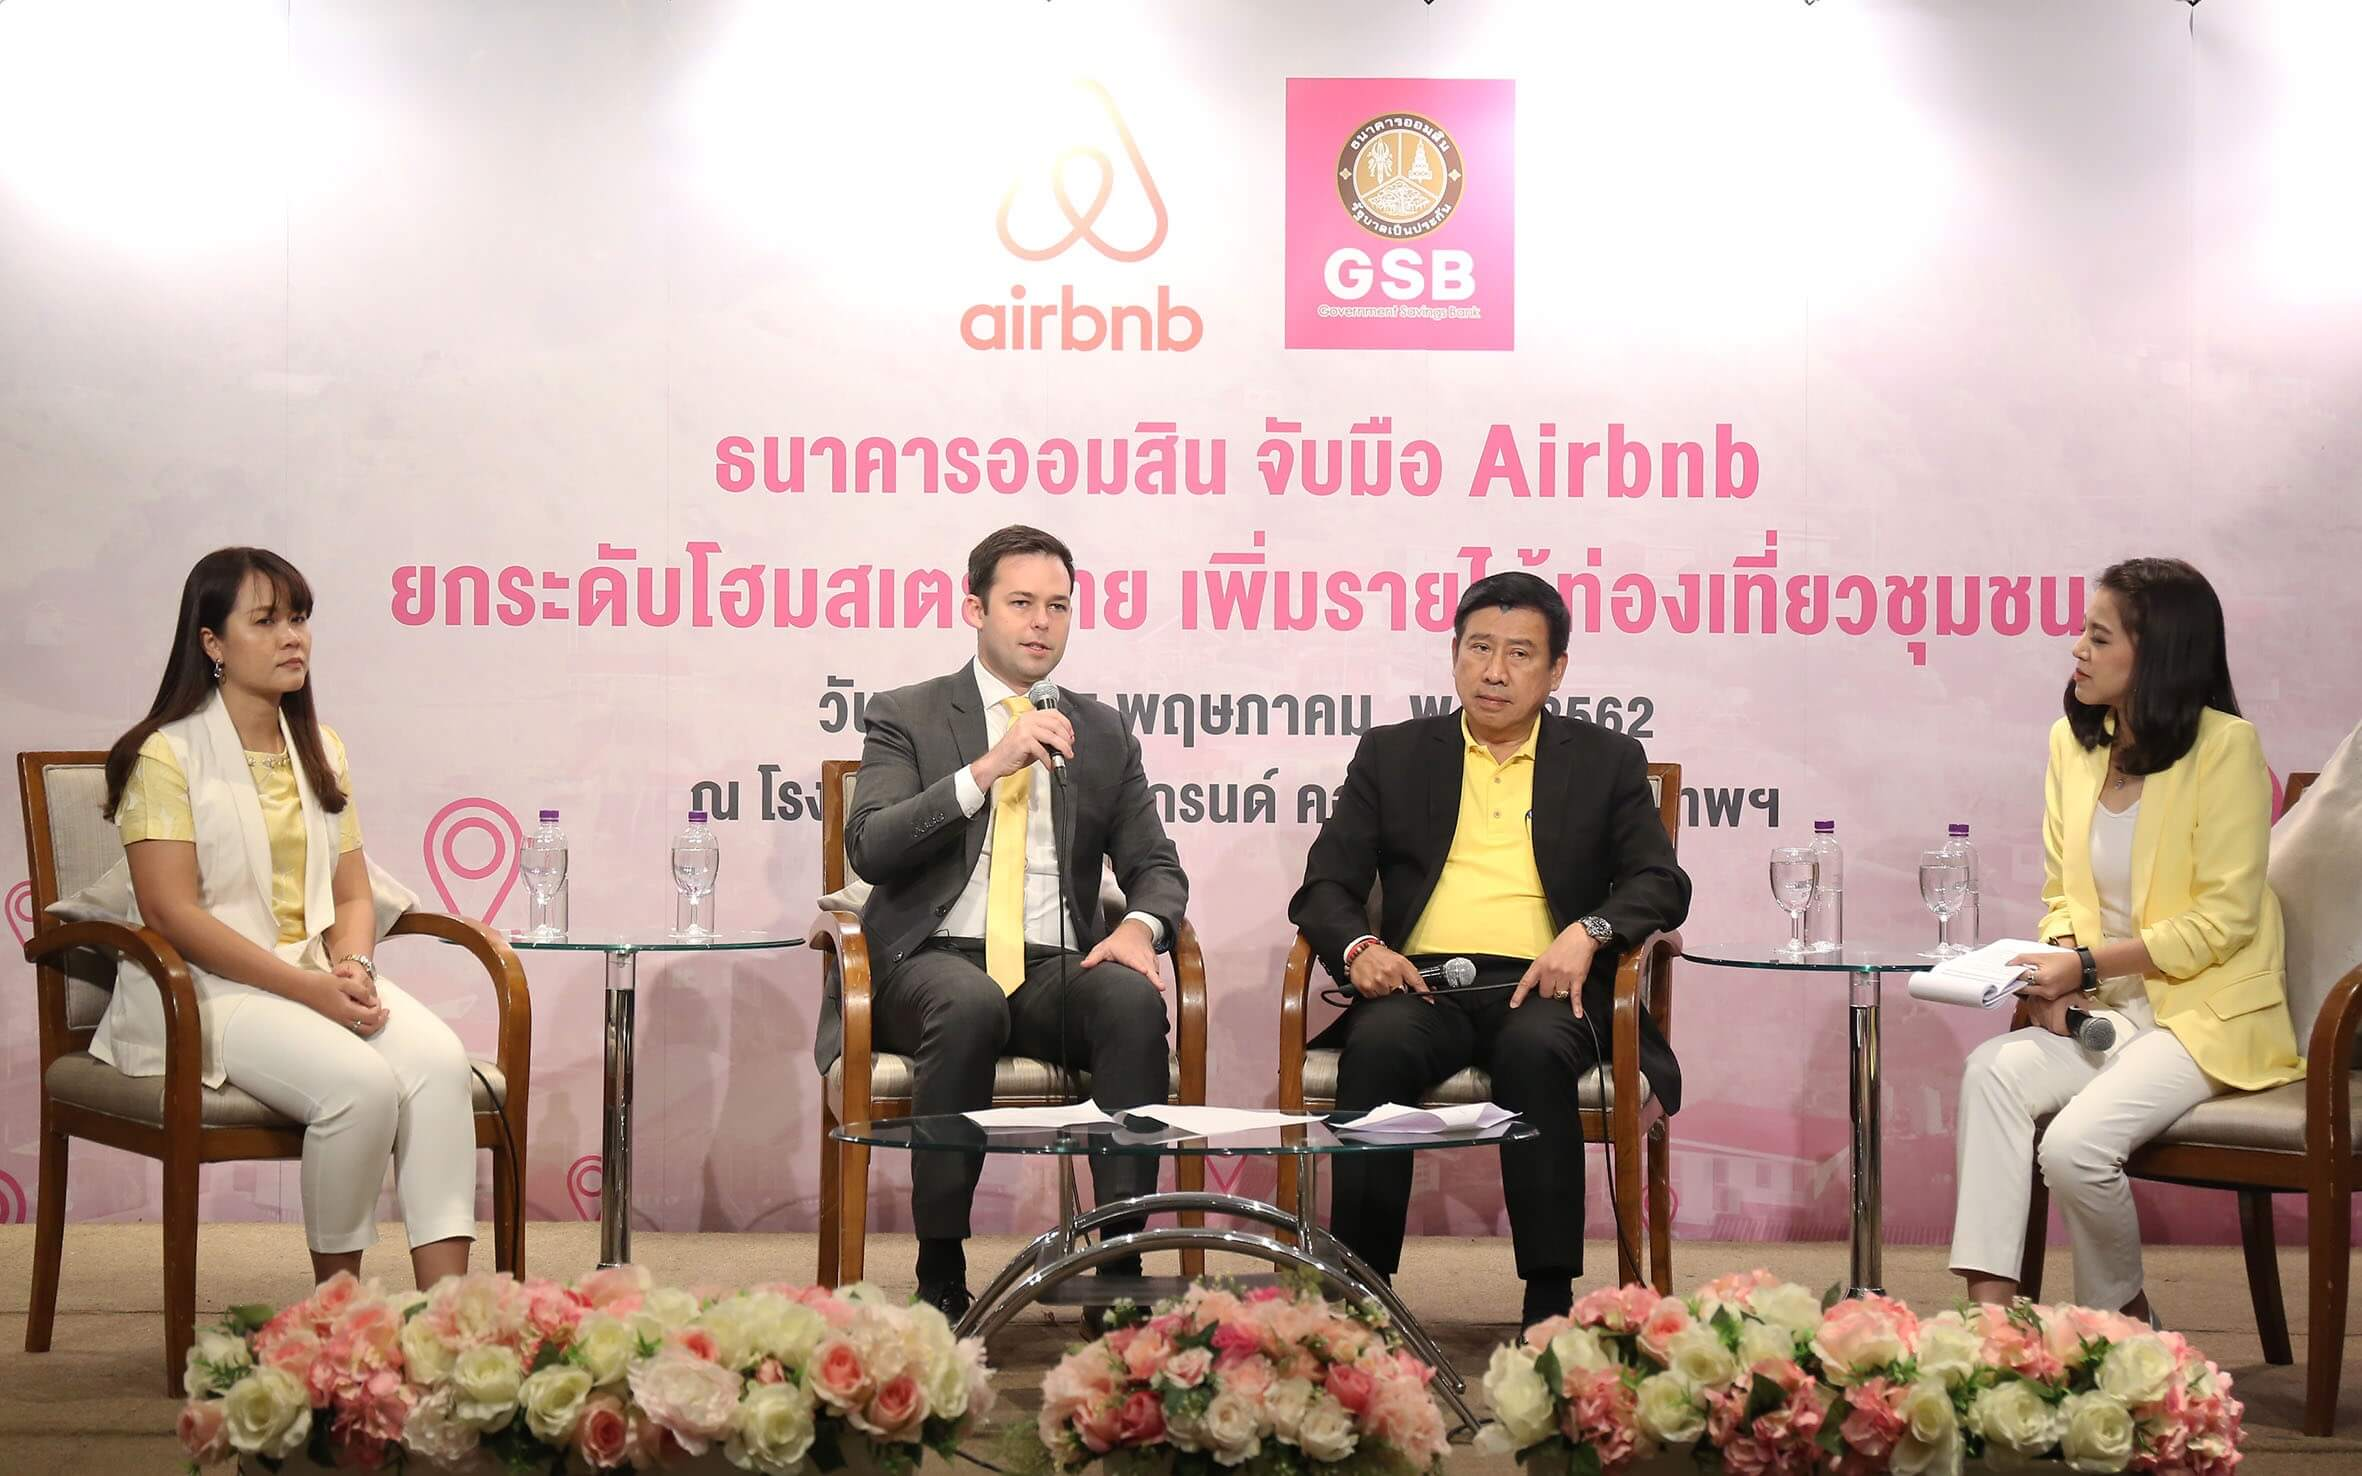 Dr.-Chatchai-Payuhanaveechai-GSB-President-and-CEO-and-Mike-Orgill-Airbnb-General-Manager-for-Southeast-Asia-Hong-Kong-and-Taiwan-από κοινού-ξεκίνησε τη συνεργασία